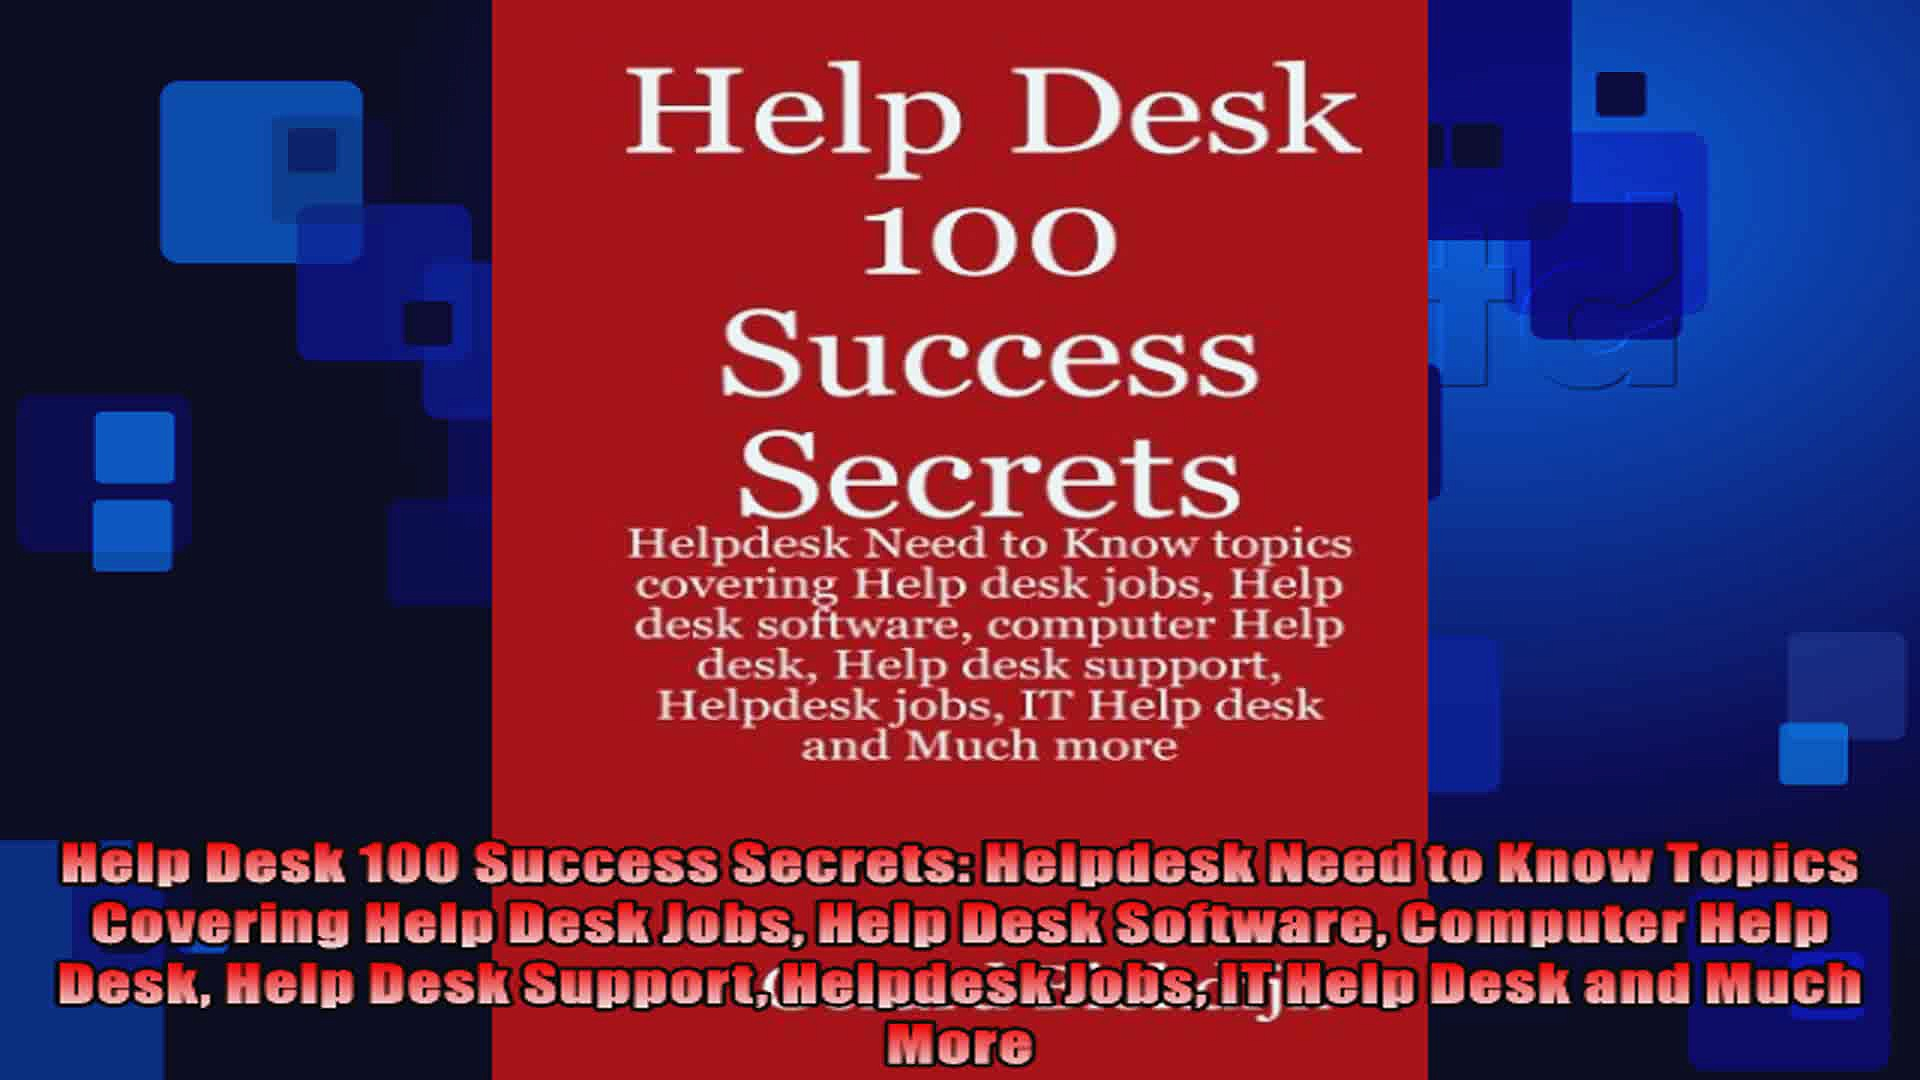 Help Desk 100 Success Secrets Helpdesk Need to Know Topics Covering Help Desk Jobs Help